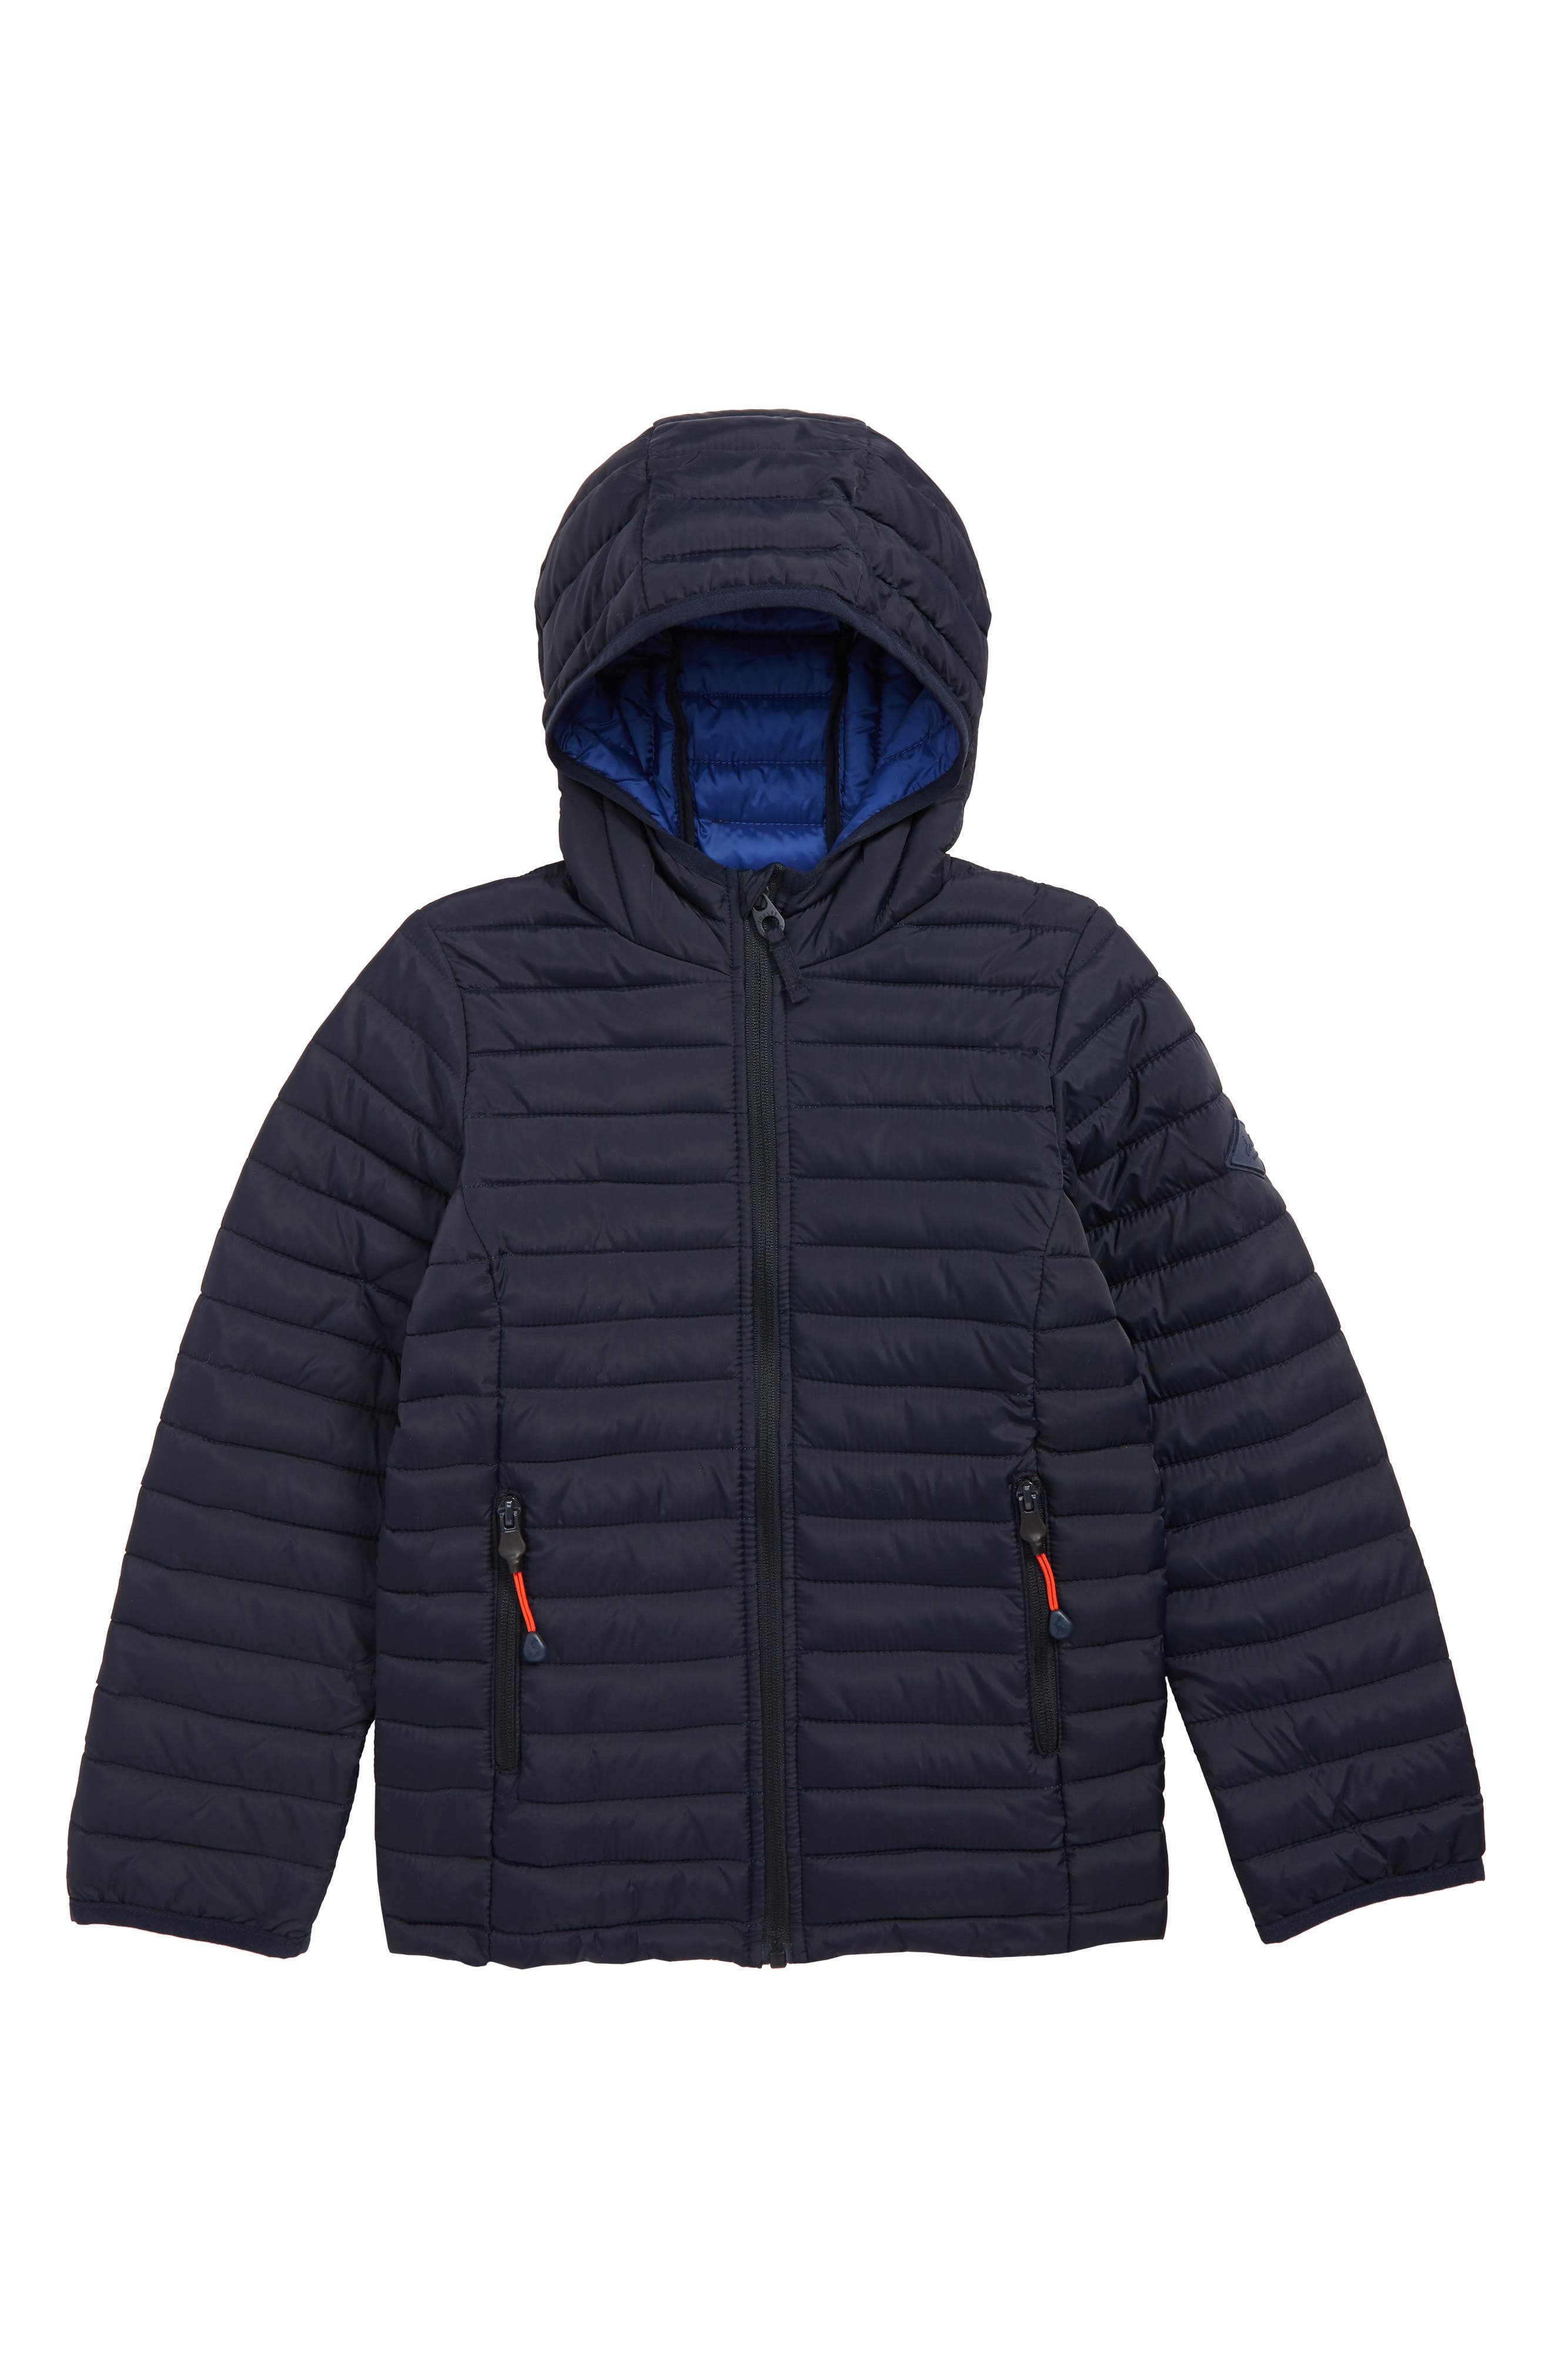 JOULES Cairn Packable Puffer Coat, Main, color, NAVY